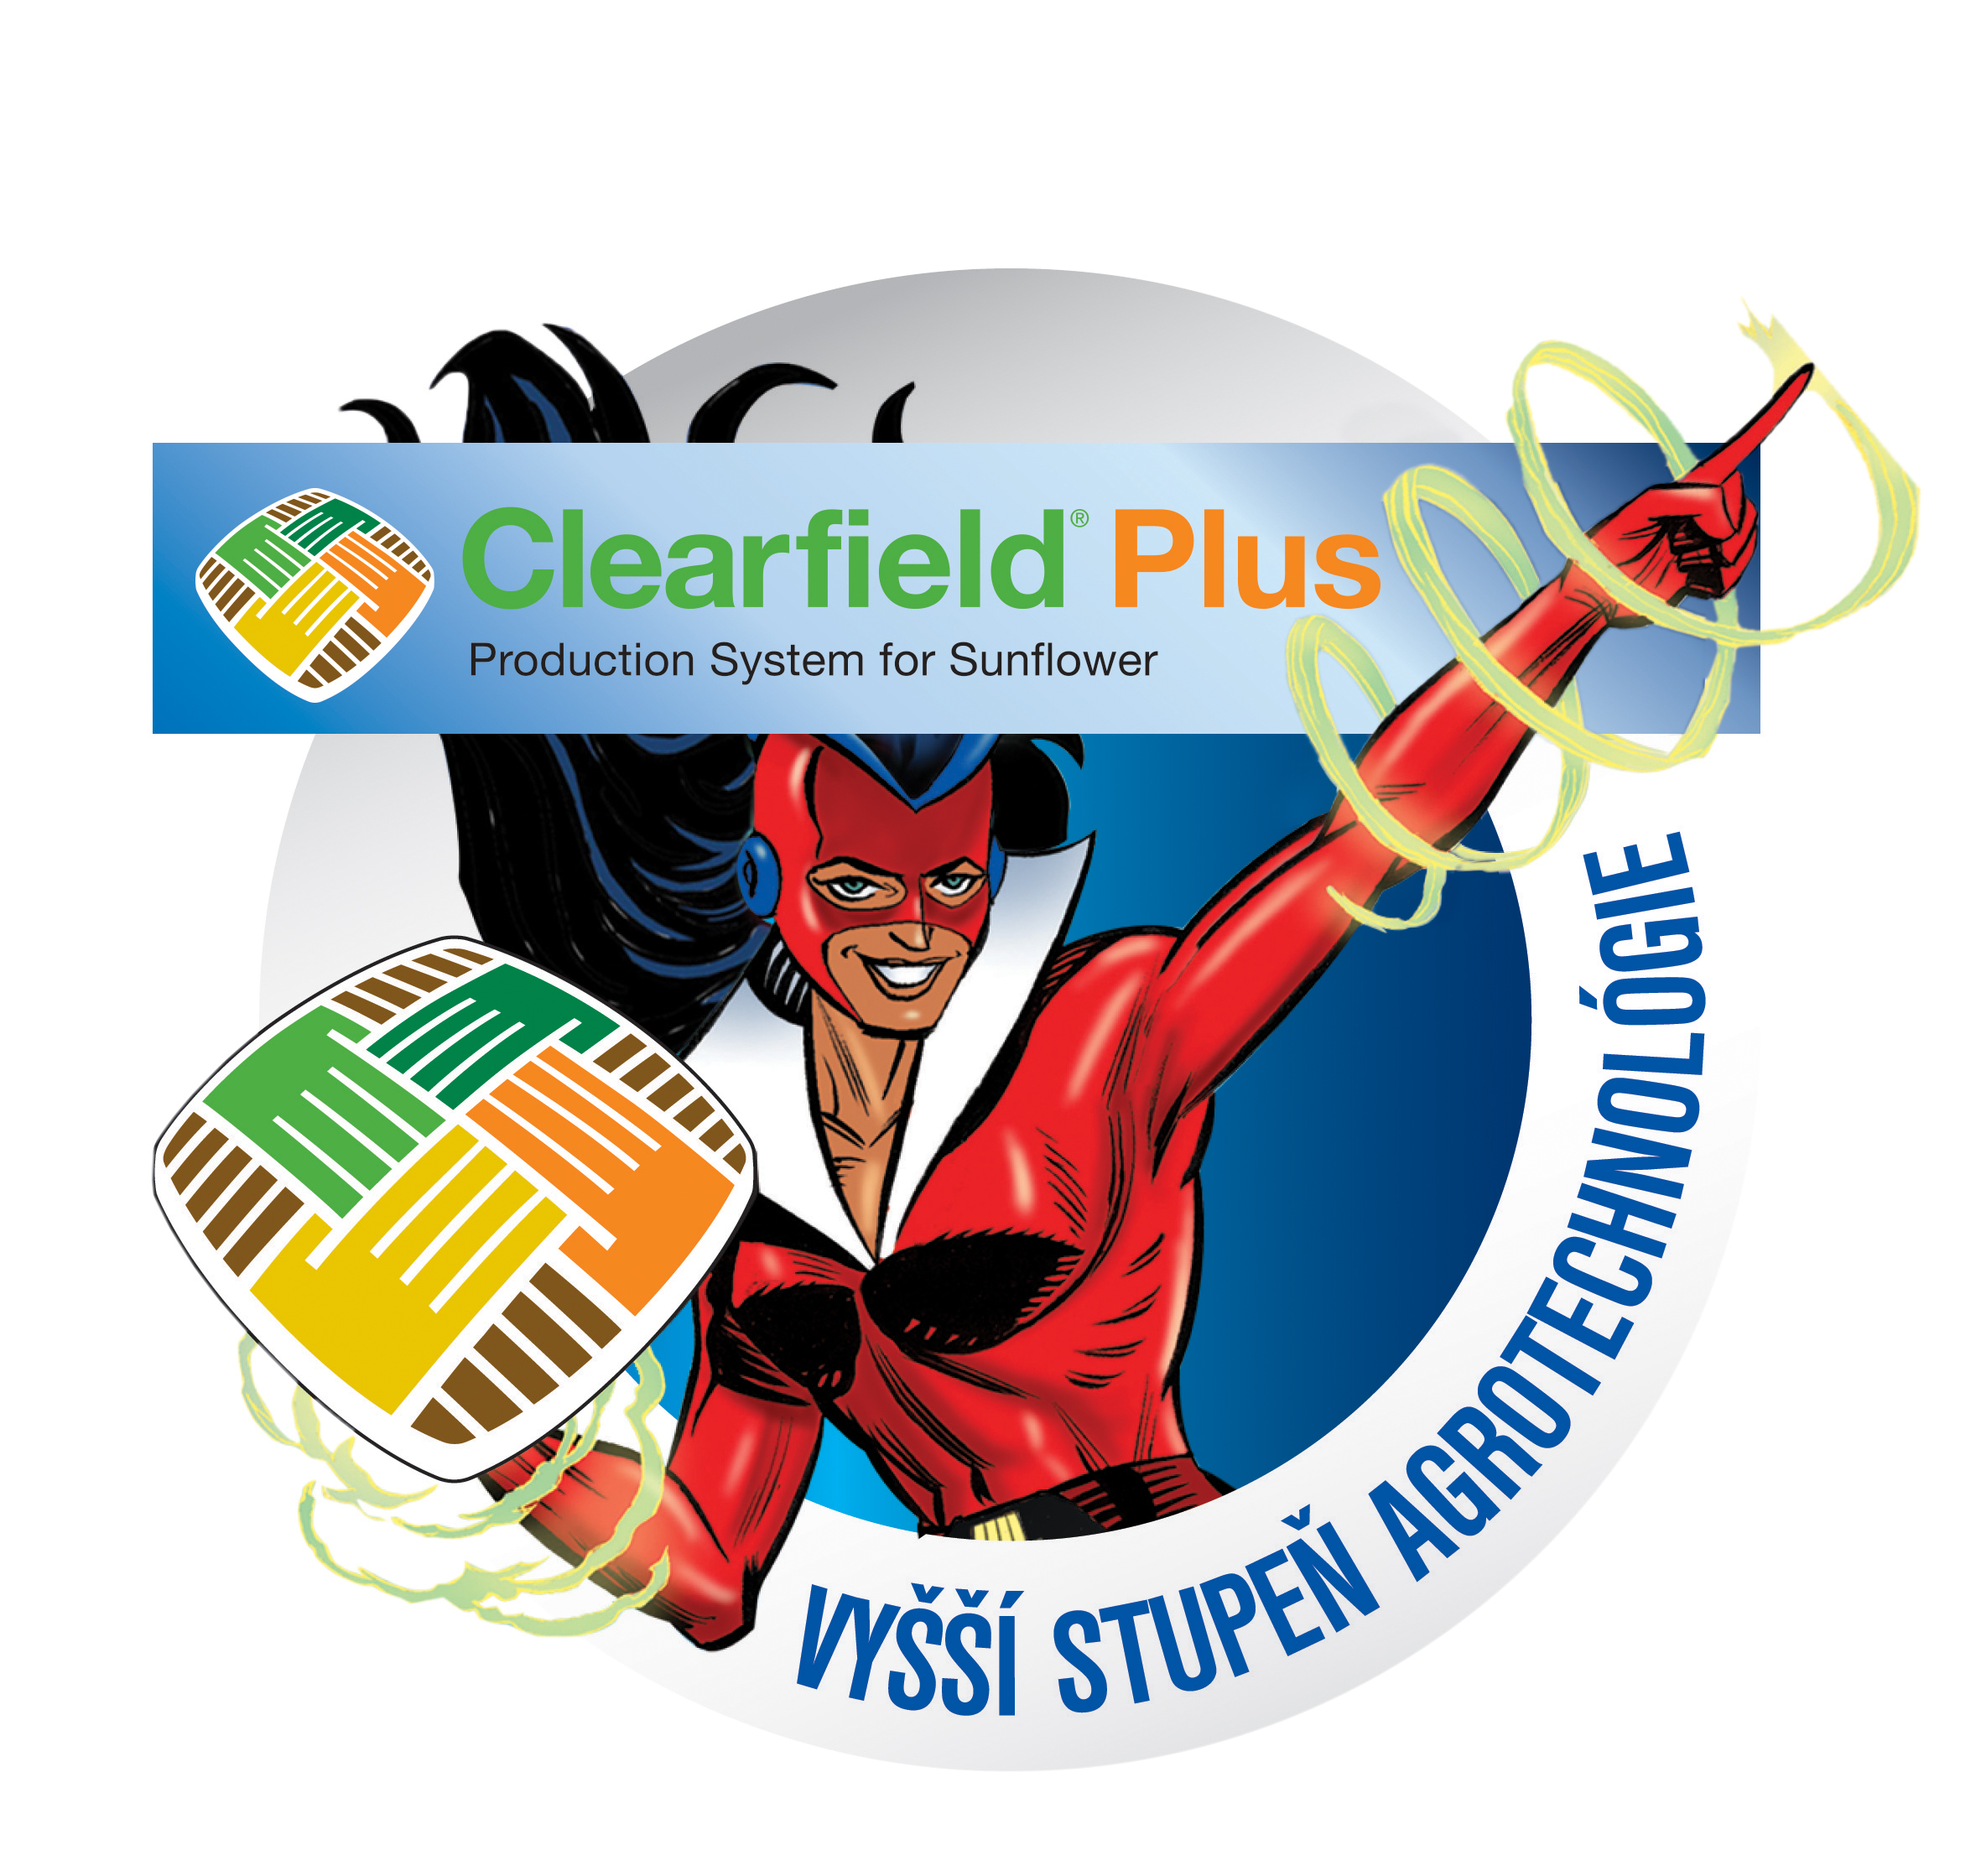 clearfield plus